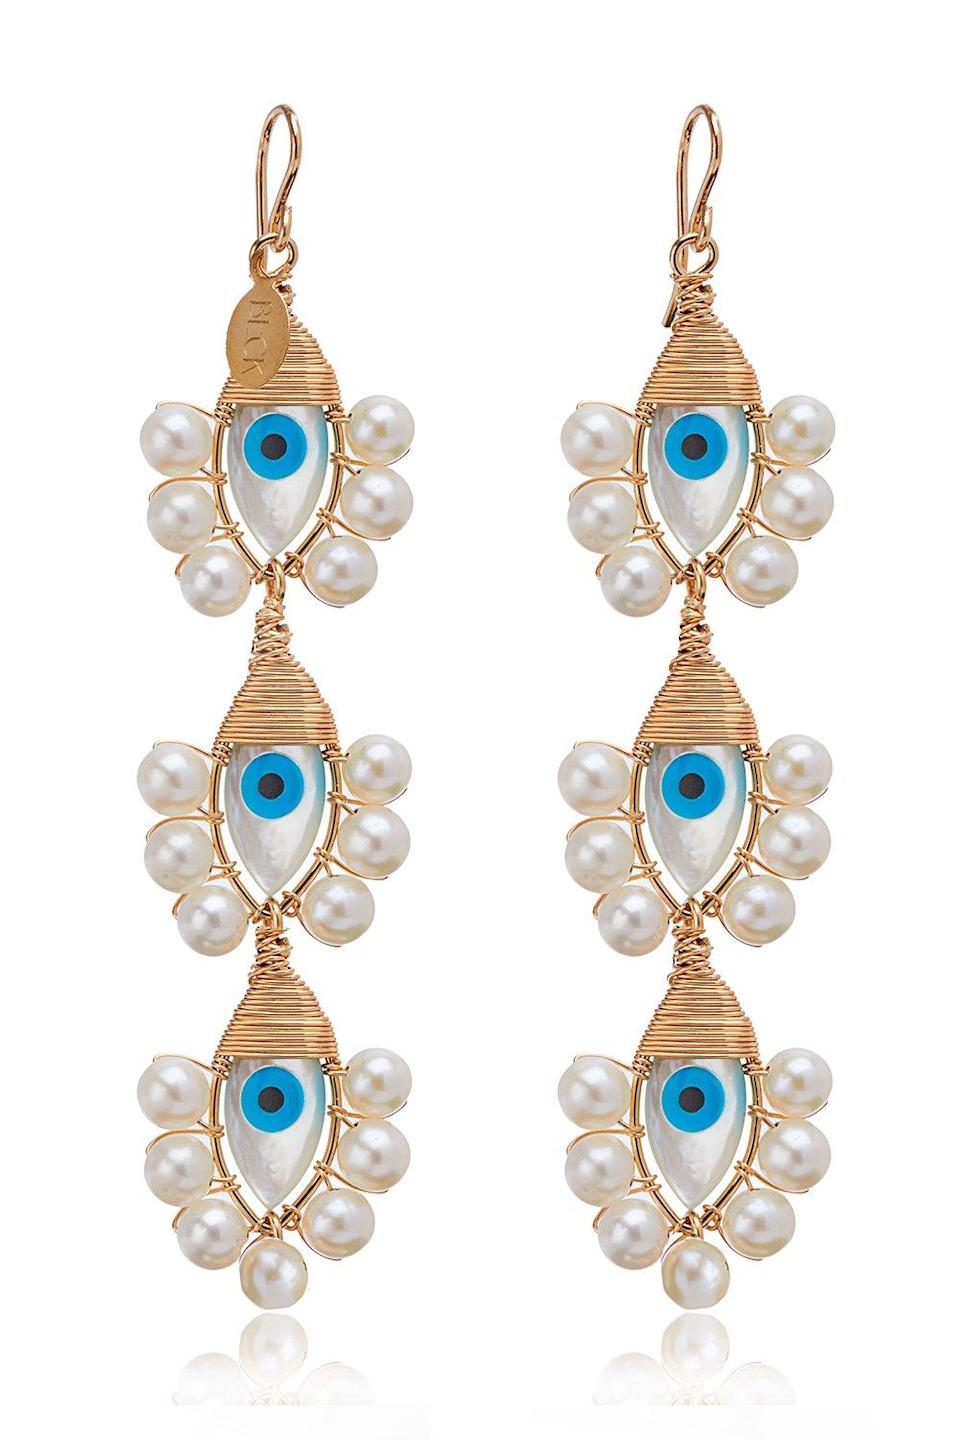 "<br> <br> <strong>Beck Jewels</strong> Evil Eye Lolita Trio Earrings, $, available at <a href=""https://go.skimresources.com/?id=30283X879131&url=https%3A%2F%2Fmaison-de-mode.com%2Fproducts%2Fevil-eye-lolita-trio-earrings"" rel=""nofollow noopener"" target=""_blank"" data-ylk=""slk:Maison de Mode"" class=""link rapid-noclick-resp"">Maison de Mode</a>"